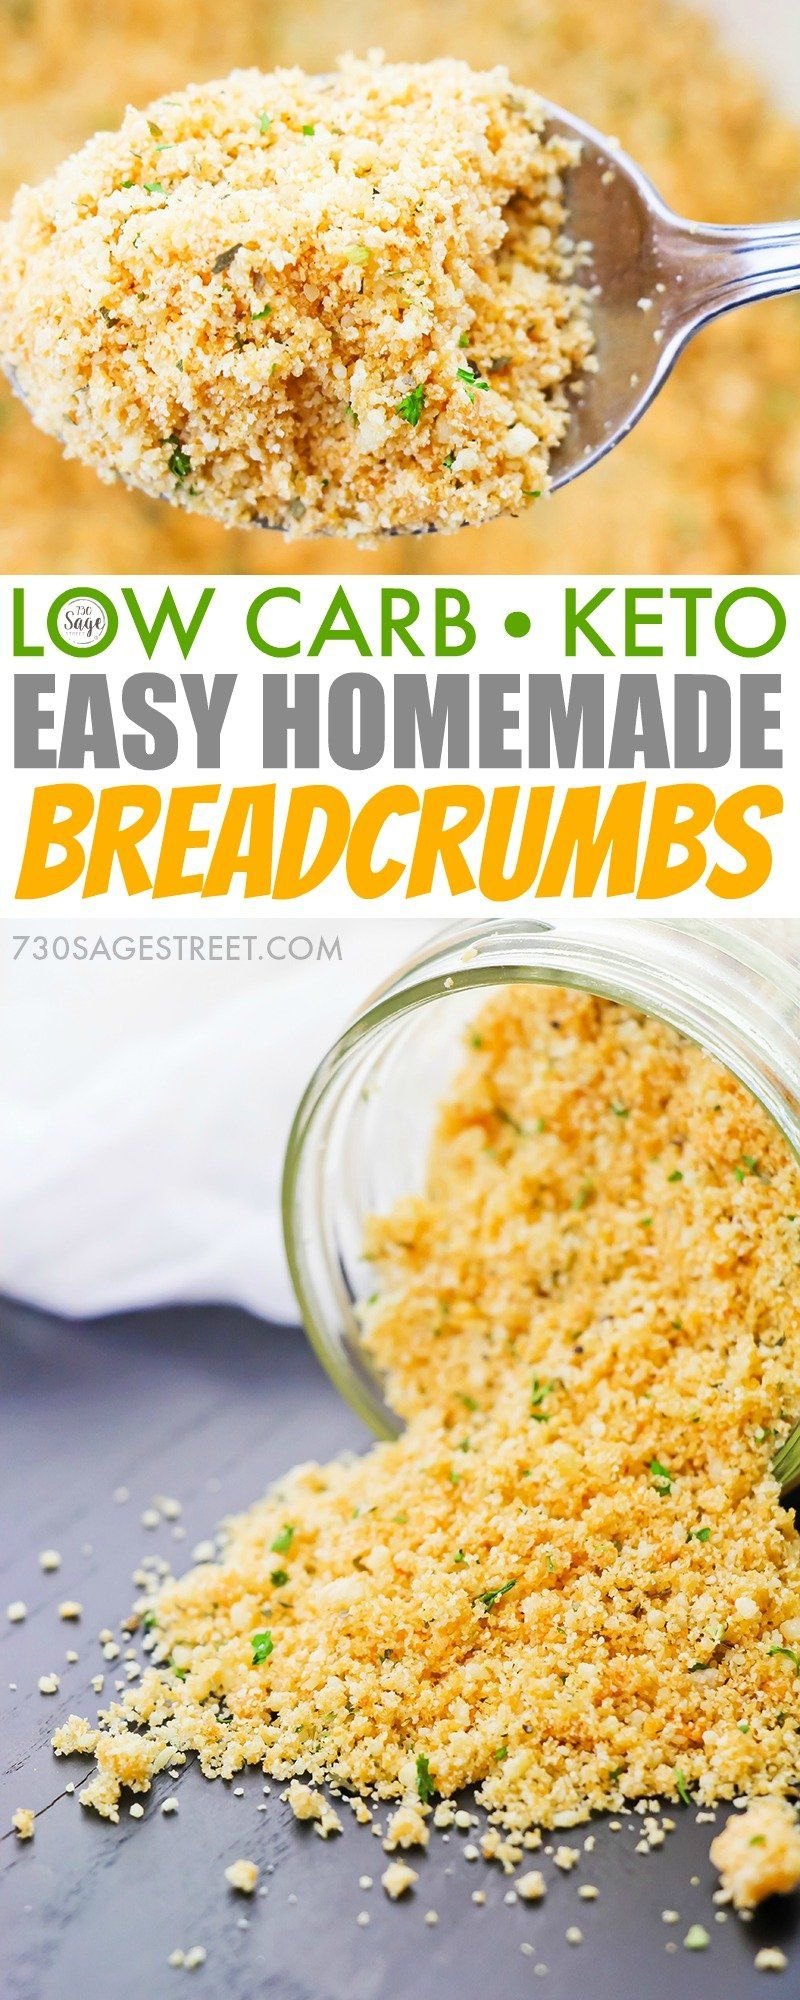 Easy Homemade Low Carb Breadcrumbs Recipe Keto Glutenfree Low Carb Keto Recipes Keto Recipes Easy Keto Diet Recipes